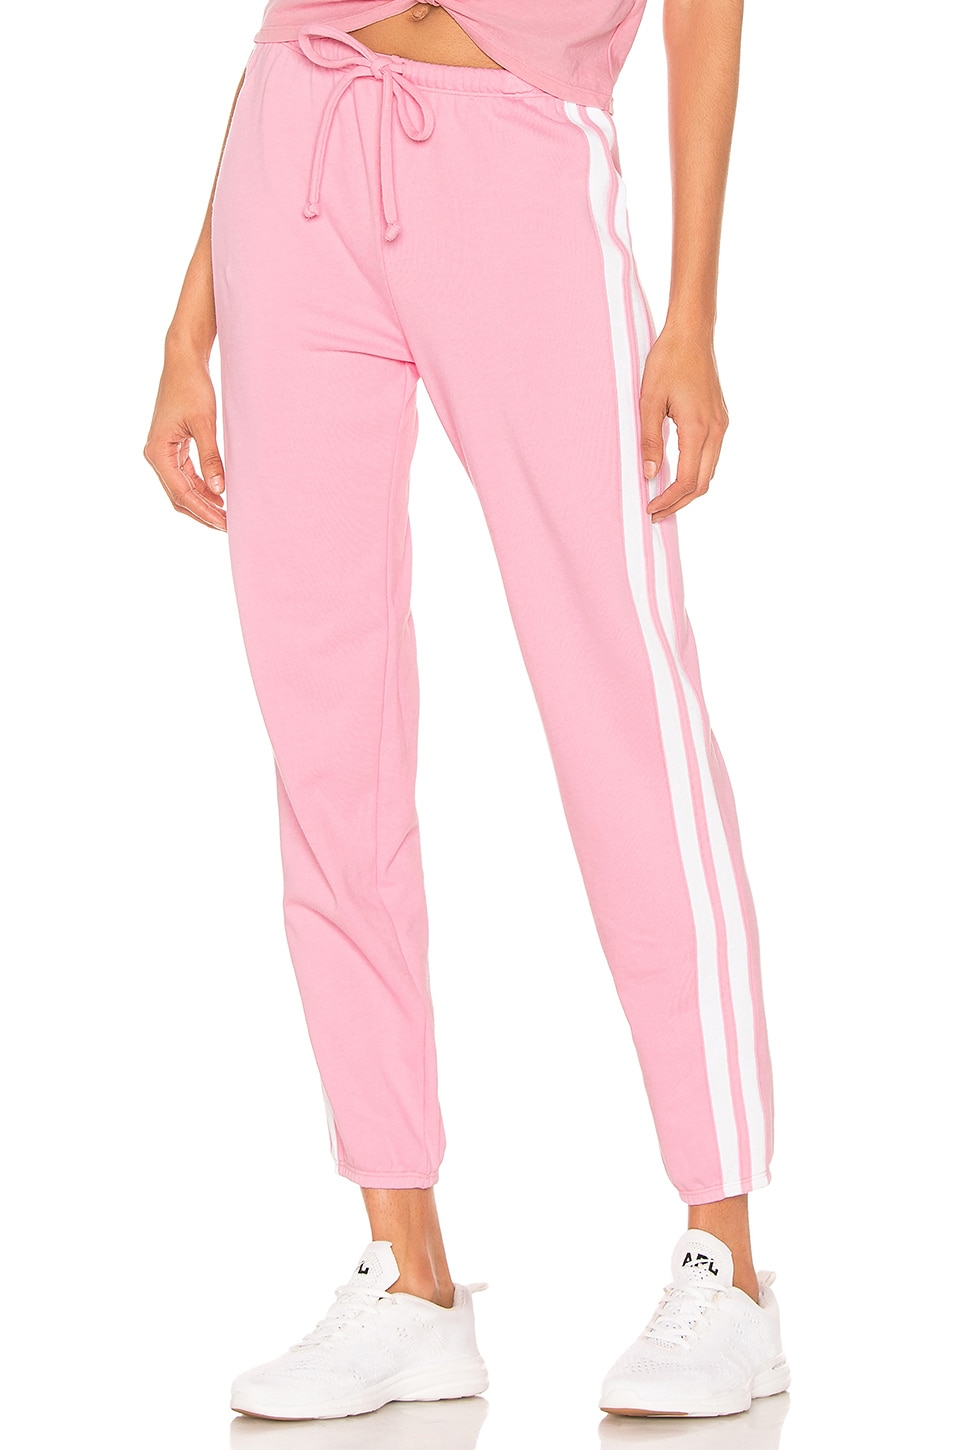 YEAR OF OURS X REVOLVE Boyfriend Track Sweatpant in Pink & White